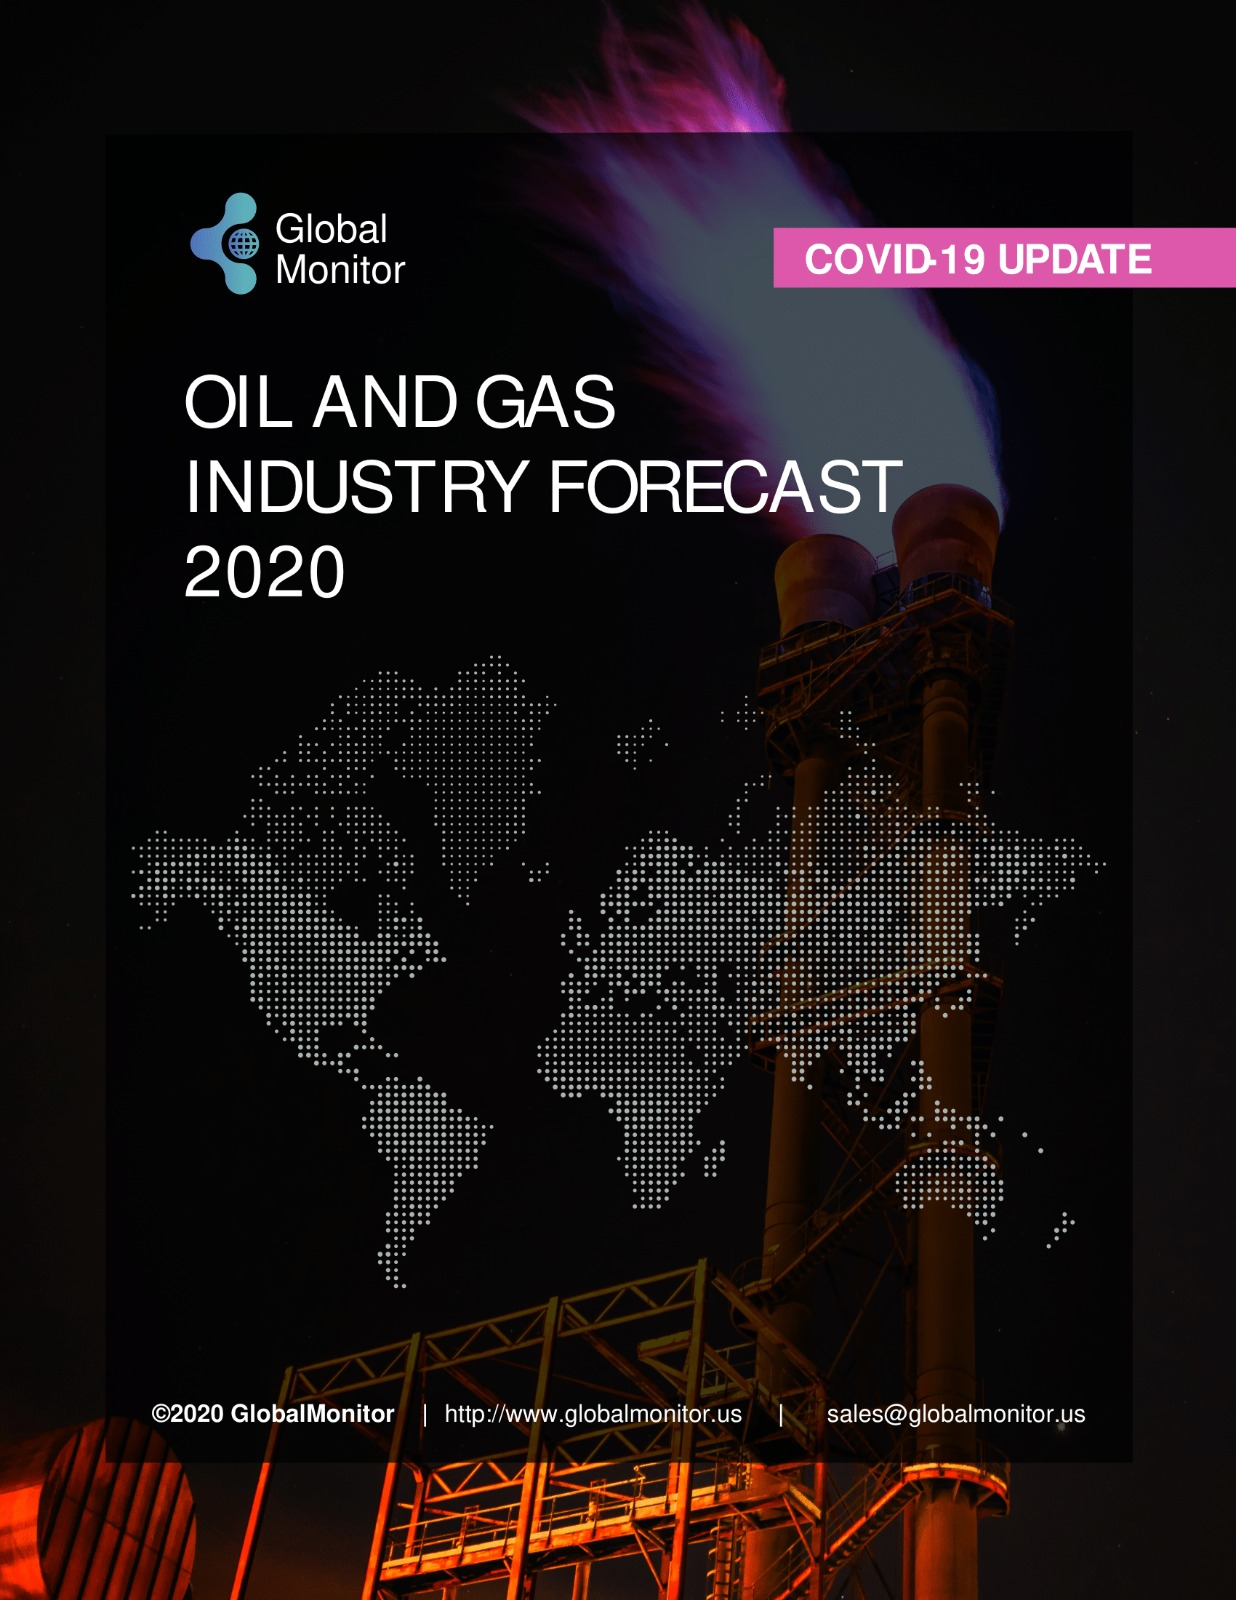 United States Oil and Gas Market Report with COVID-19 impact Analysis  (2020-2025)